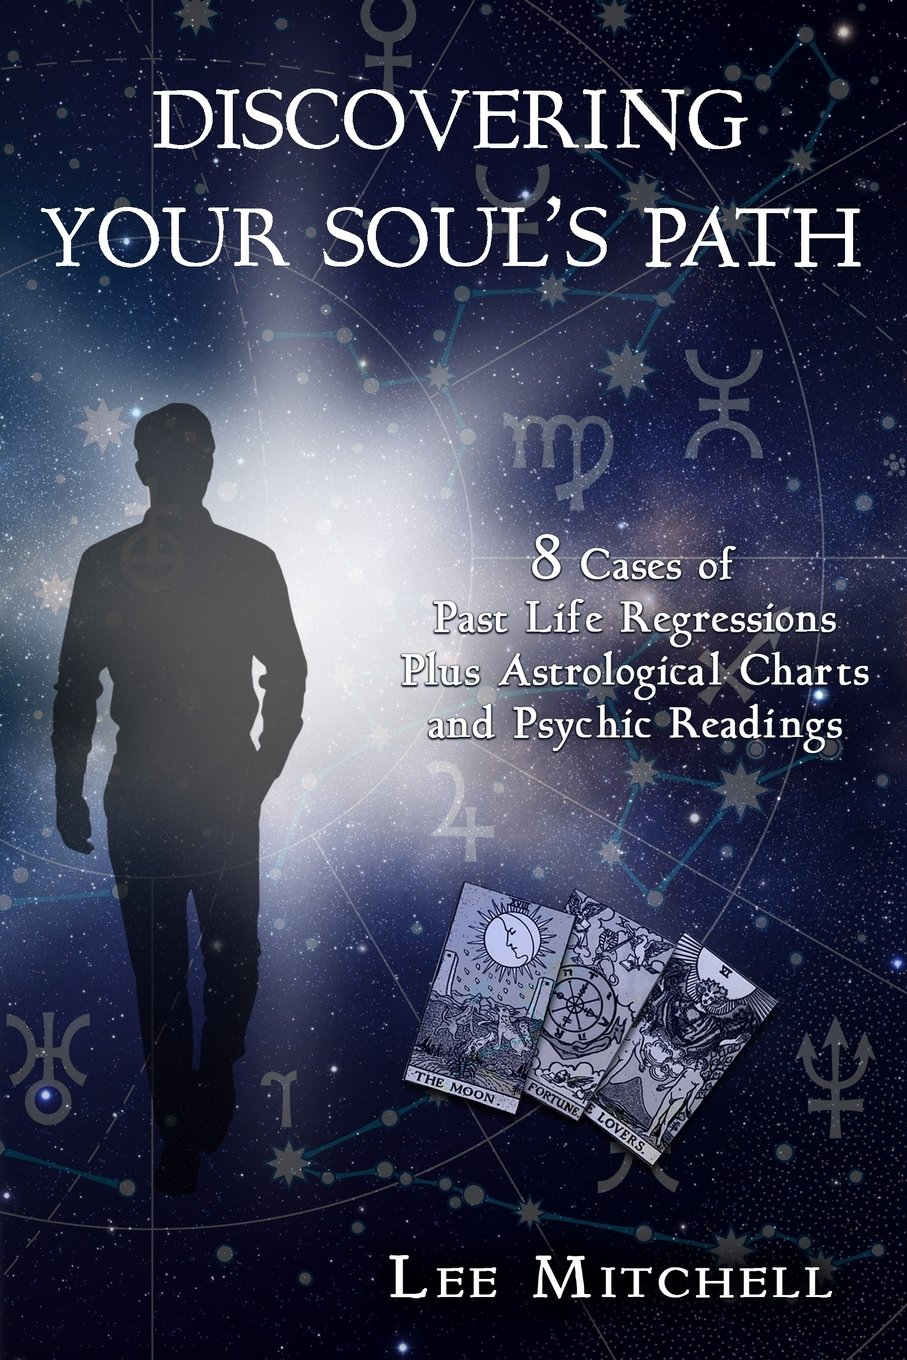 Discovering Your Soul's Path: 8 Cases of Past Life Regressions Plus